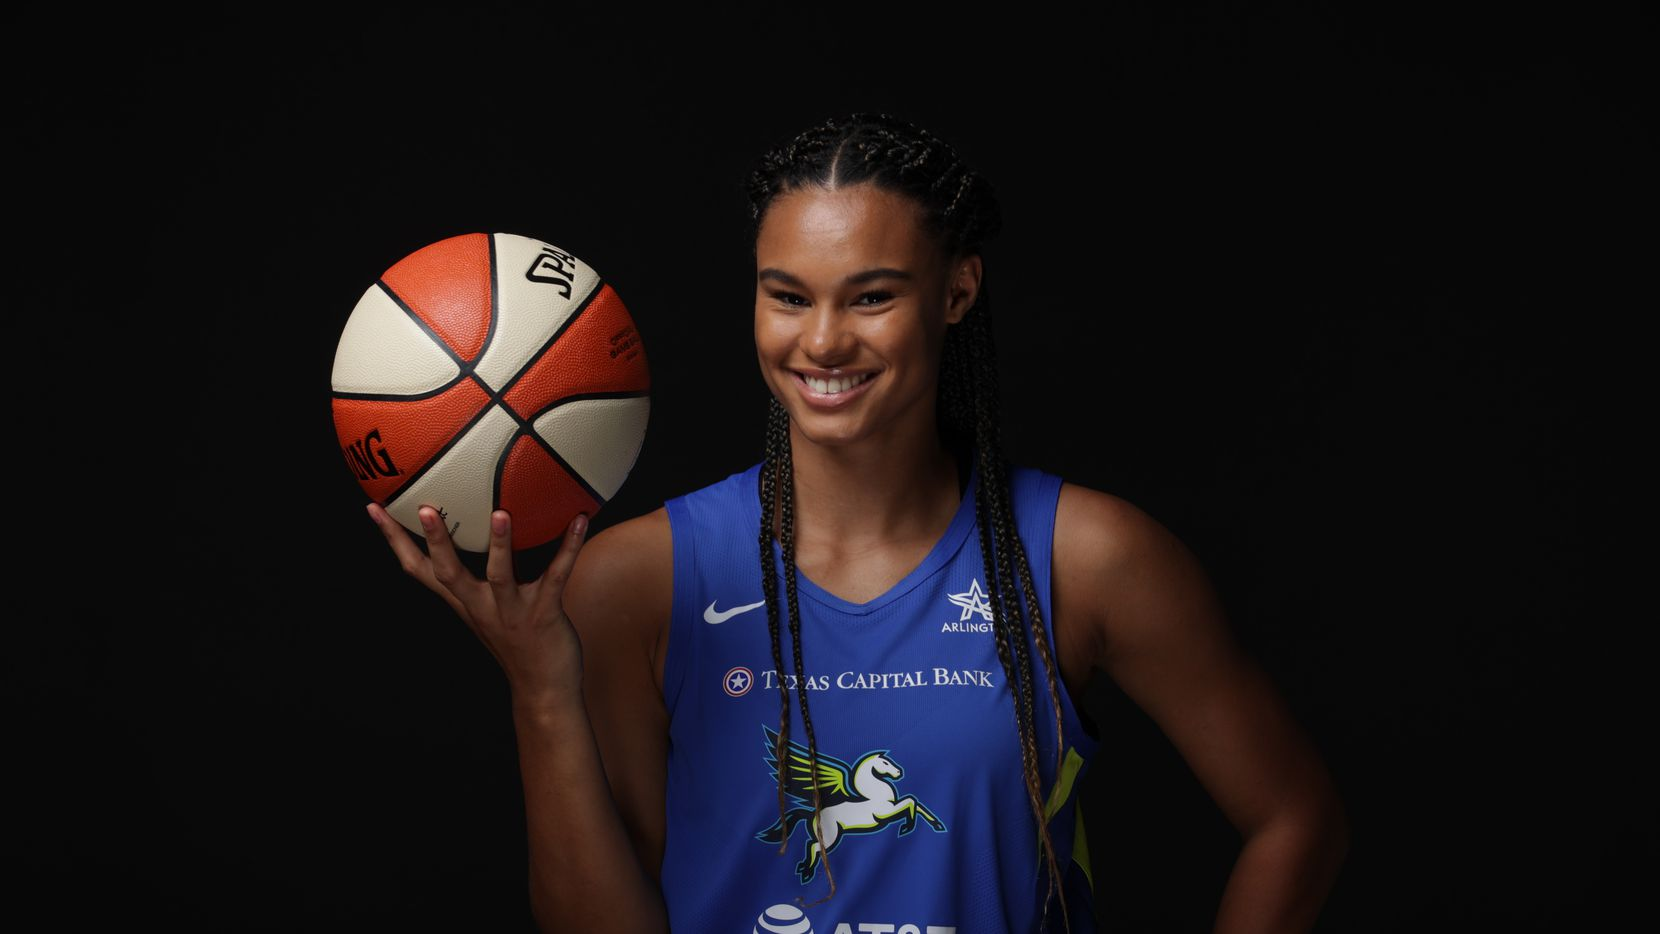 BRADENTON - JULY 16:  Satou Sabally #0 of the Dallas Wings poses for a portrait during Media Day on July 16, 2020 at IMG Academy in Bradenton, Florida. NOTE TO USER: User expressly acknowledges and agrees that, by downloading and/or using this Photograph, user is consenting to the terms and conditions of the Getty Images License Agreement. Mandatory Copyright Notice: Copyright 2020 NBAE